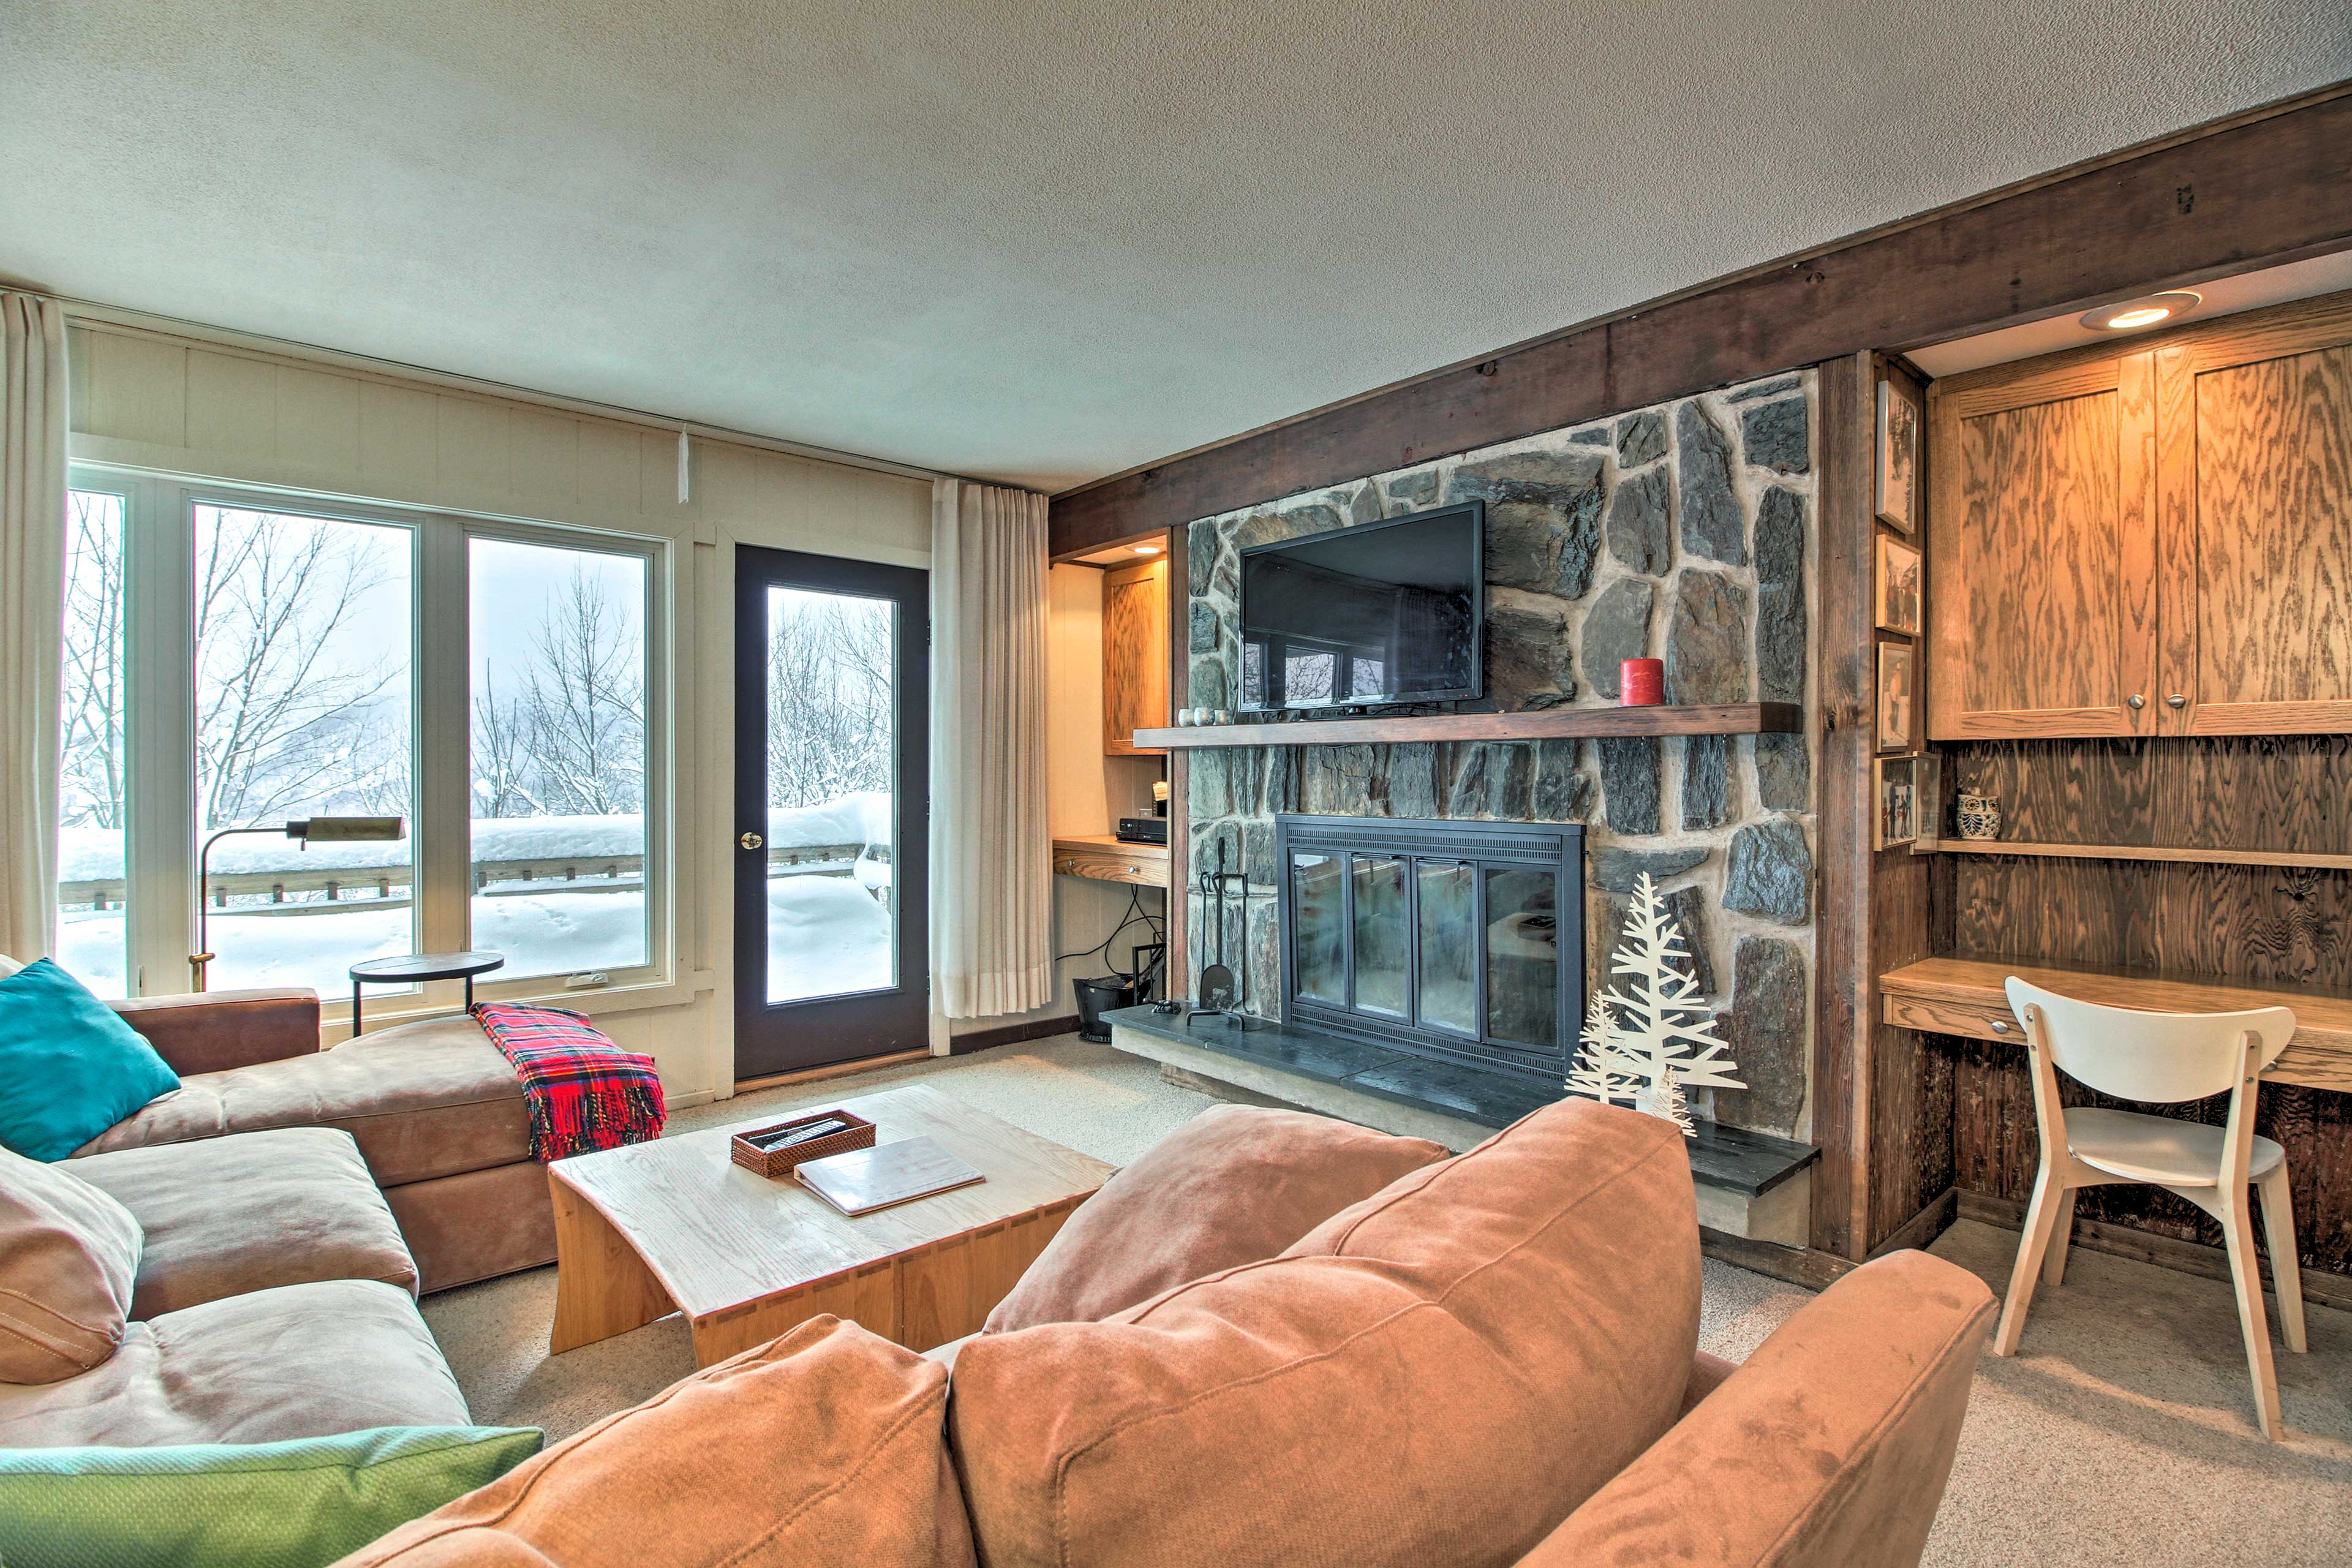 This condo comfortably sleeps up to 8 guests!